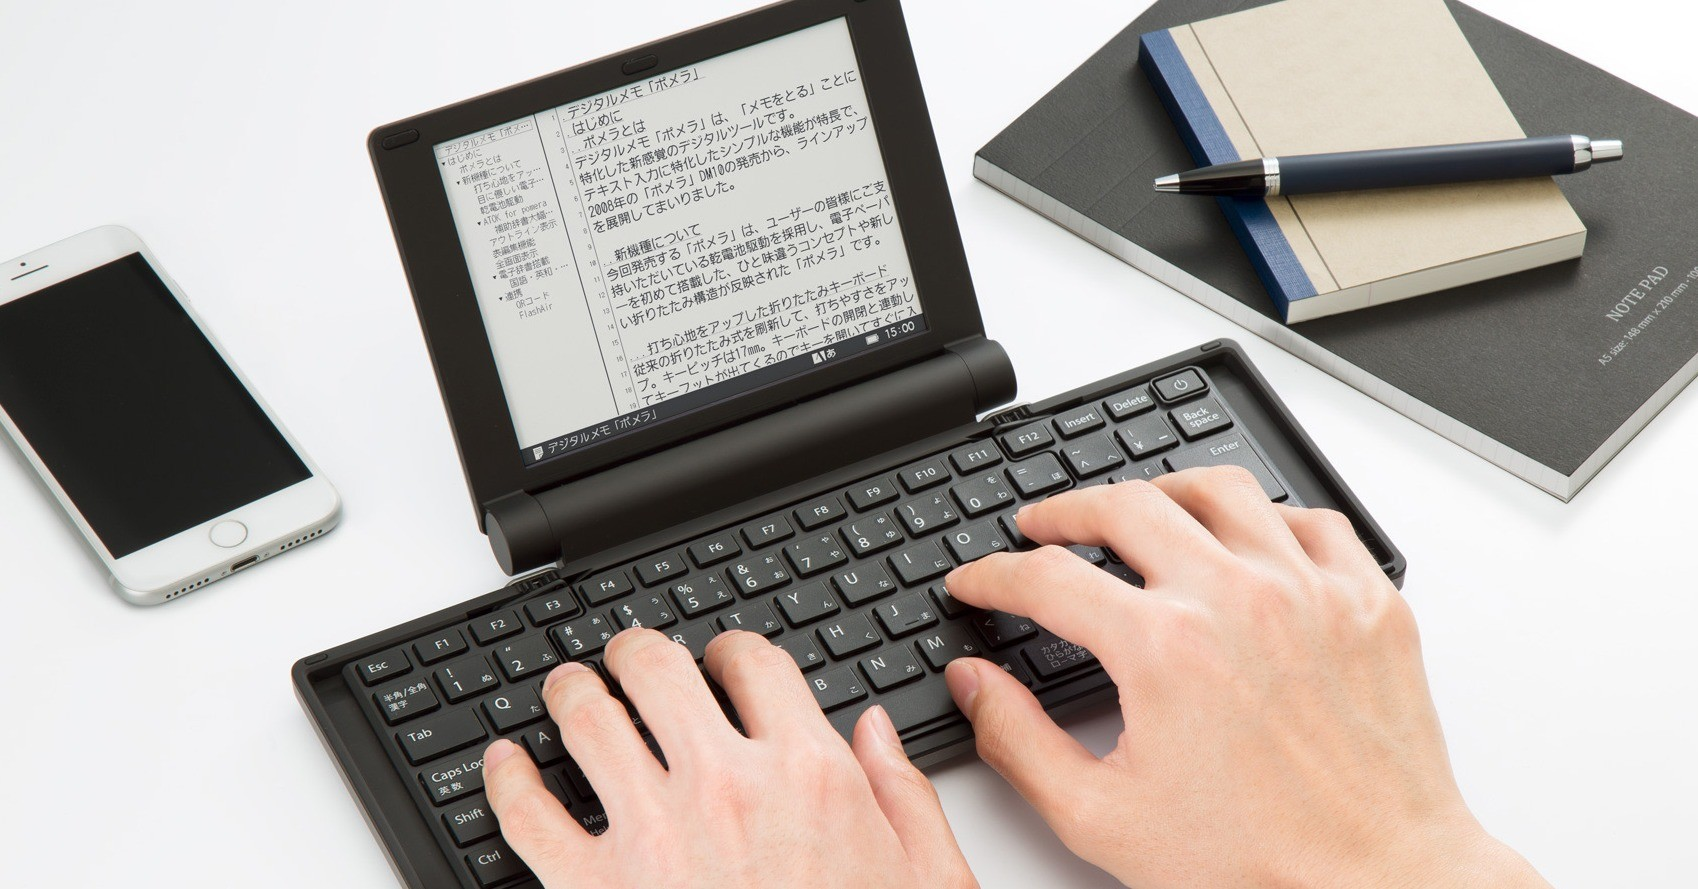 Netbook, Computer keyboard, Computer hardware, Personal computer, Product design, Computer, Product, Design, Font, netbook, laptop, product, netbook, computer keyboard, electronic device, product, technology, input device, communication, personal computer